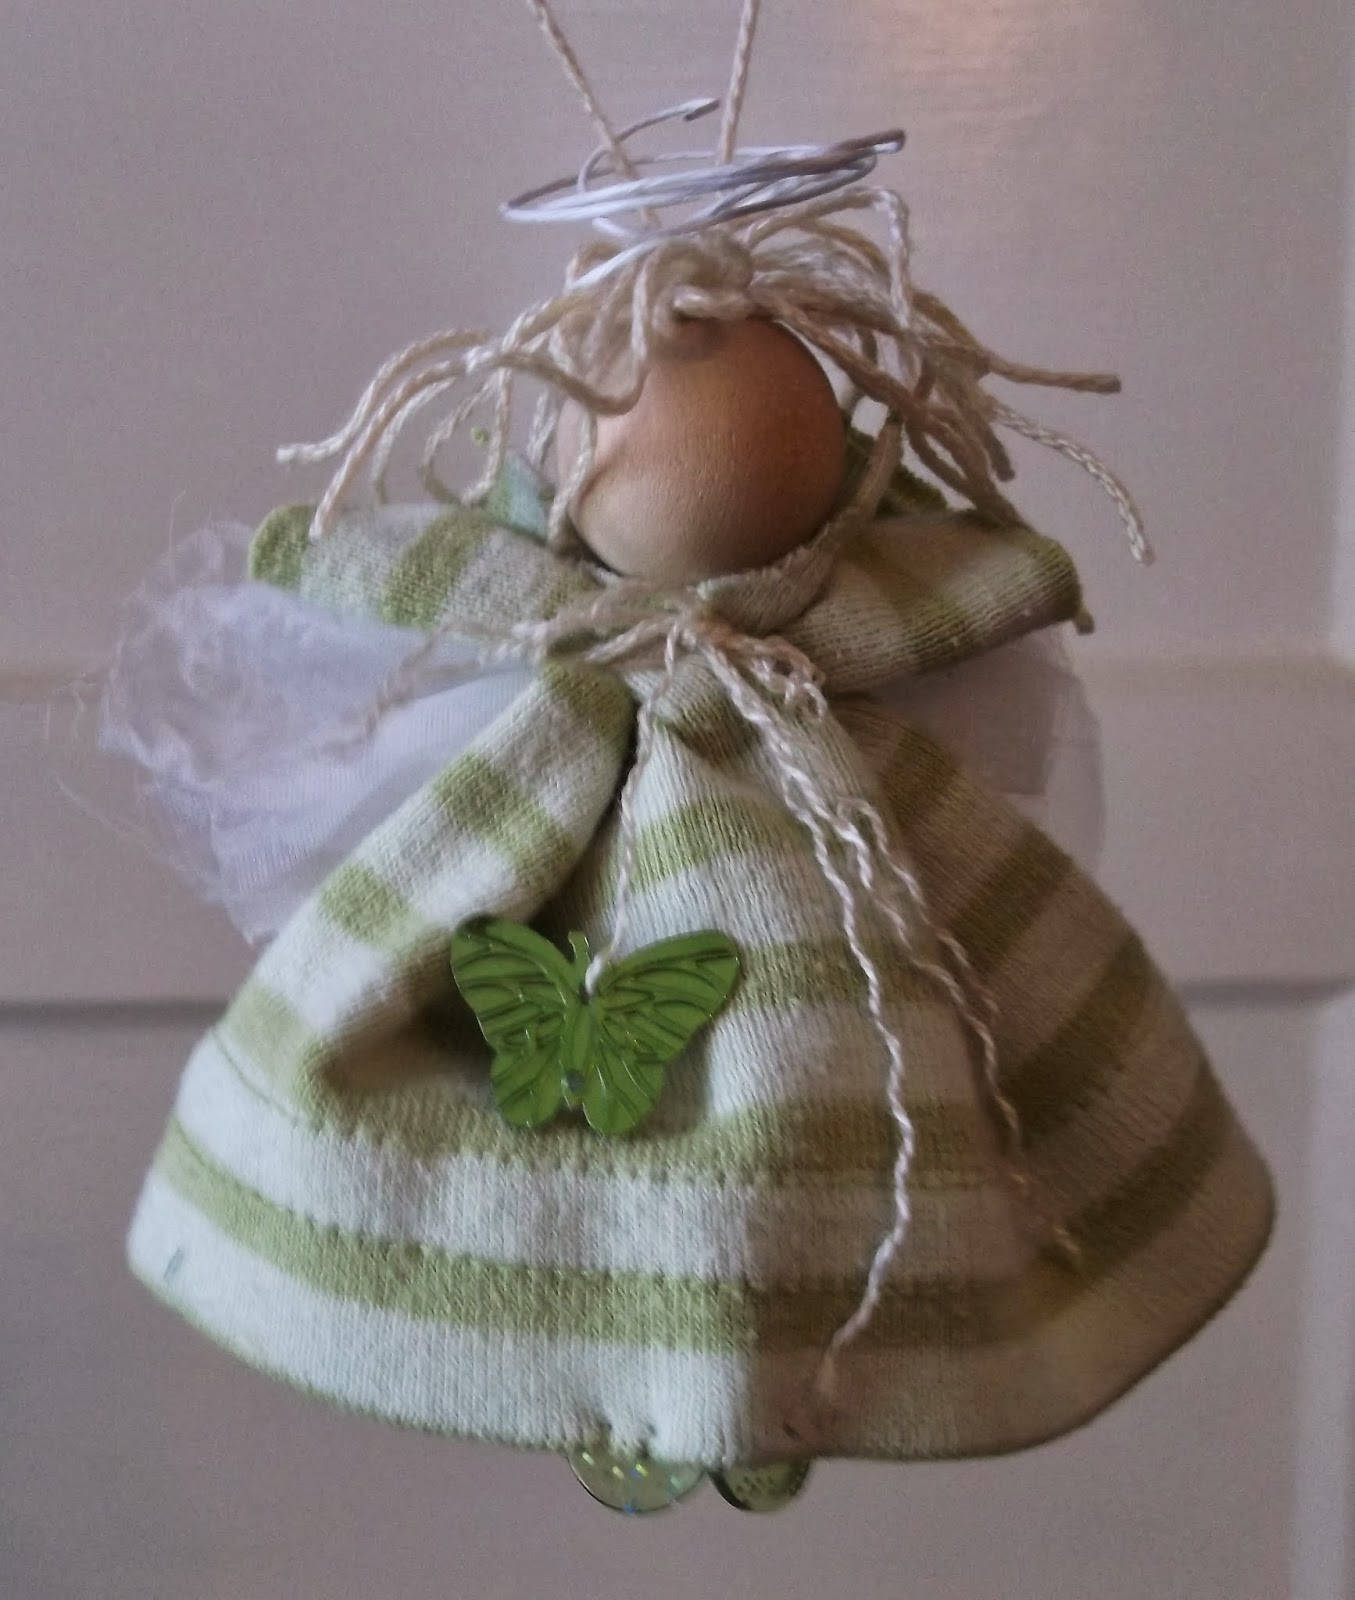 Angel Decorations To Make: Southern Sky Craft Studio: Making Angel Ornaments